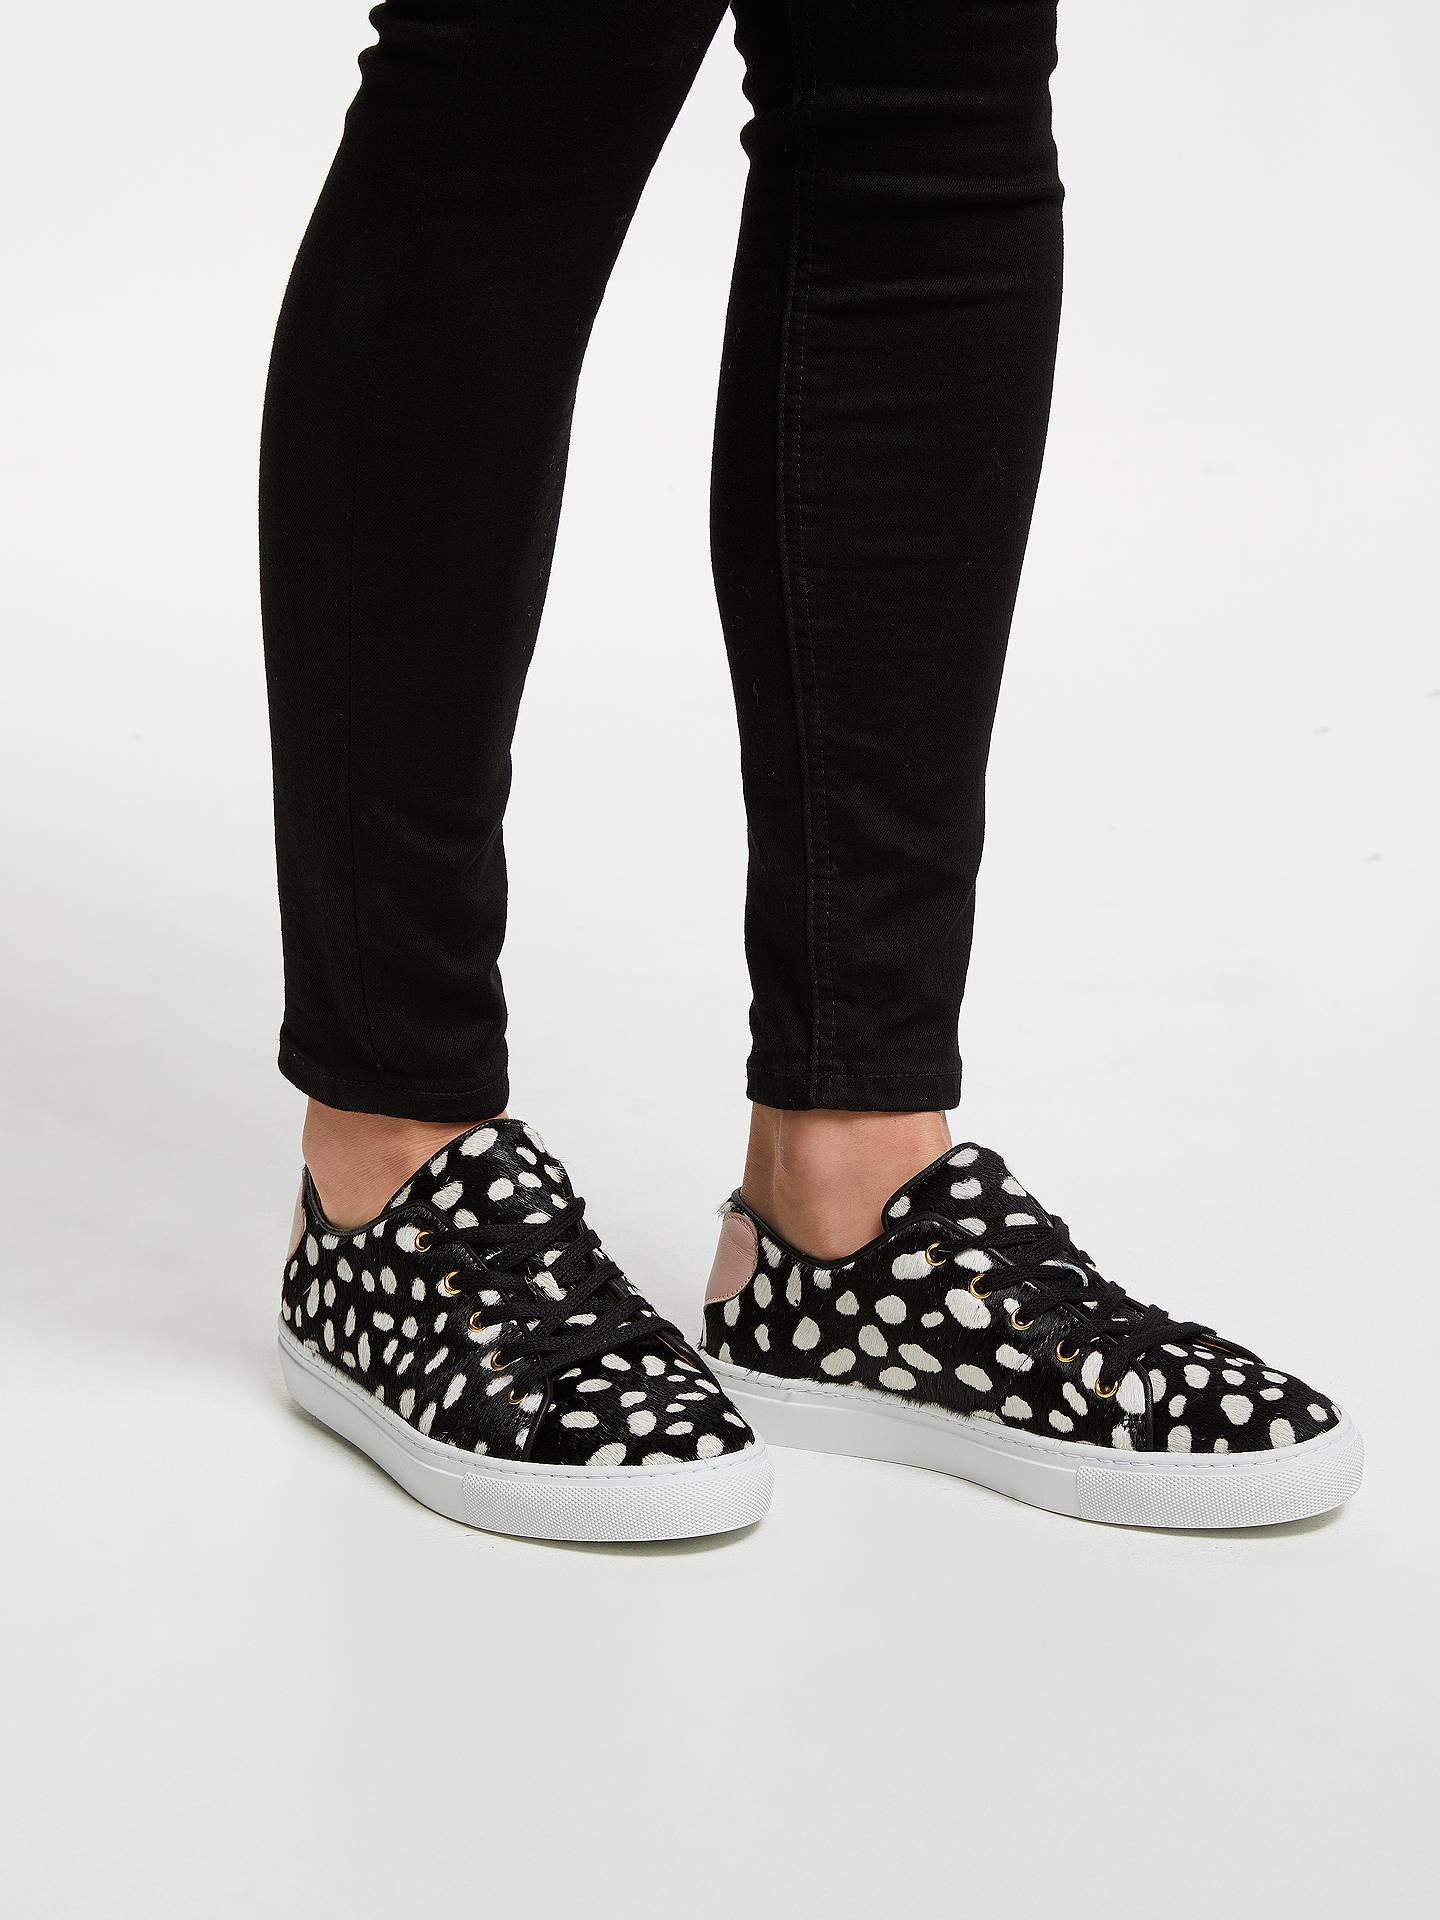 BuyRogue Spotted Sweetheart Lace Up Trainers, Black/White, 5 Online at johnlewis.com